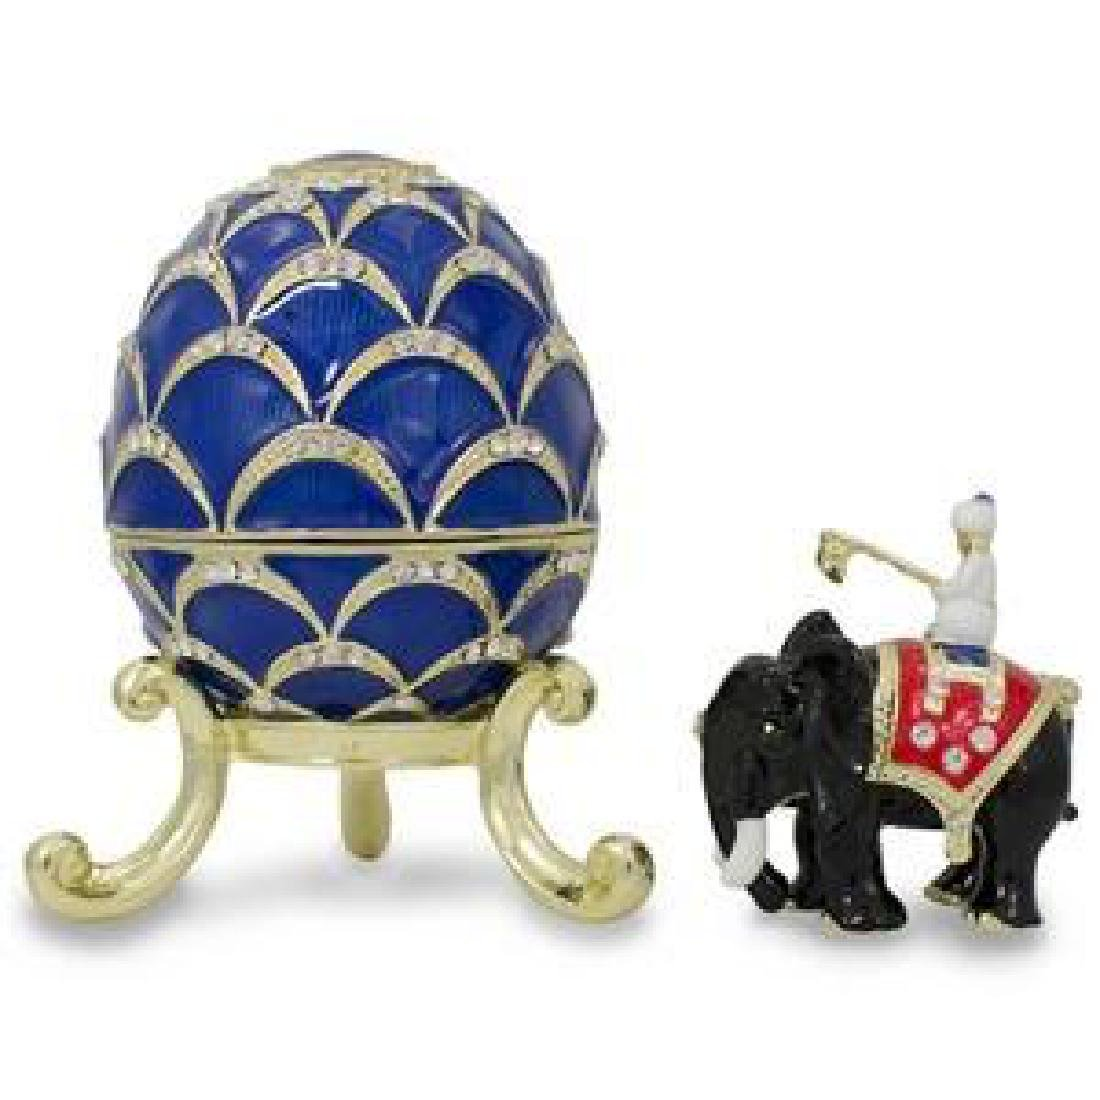 1900 Pine Cone Russian Faberge Egg